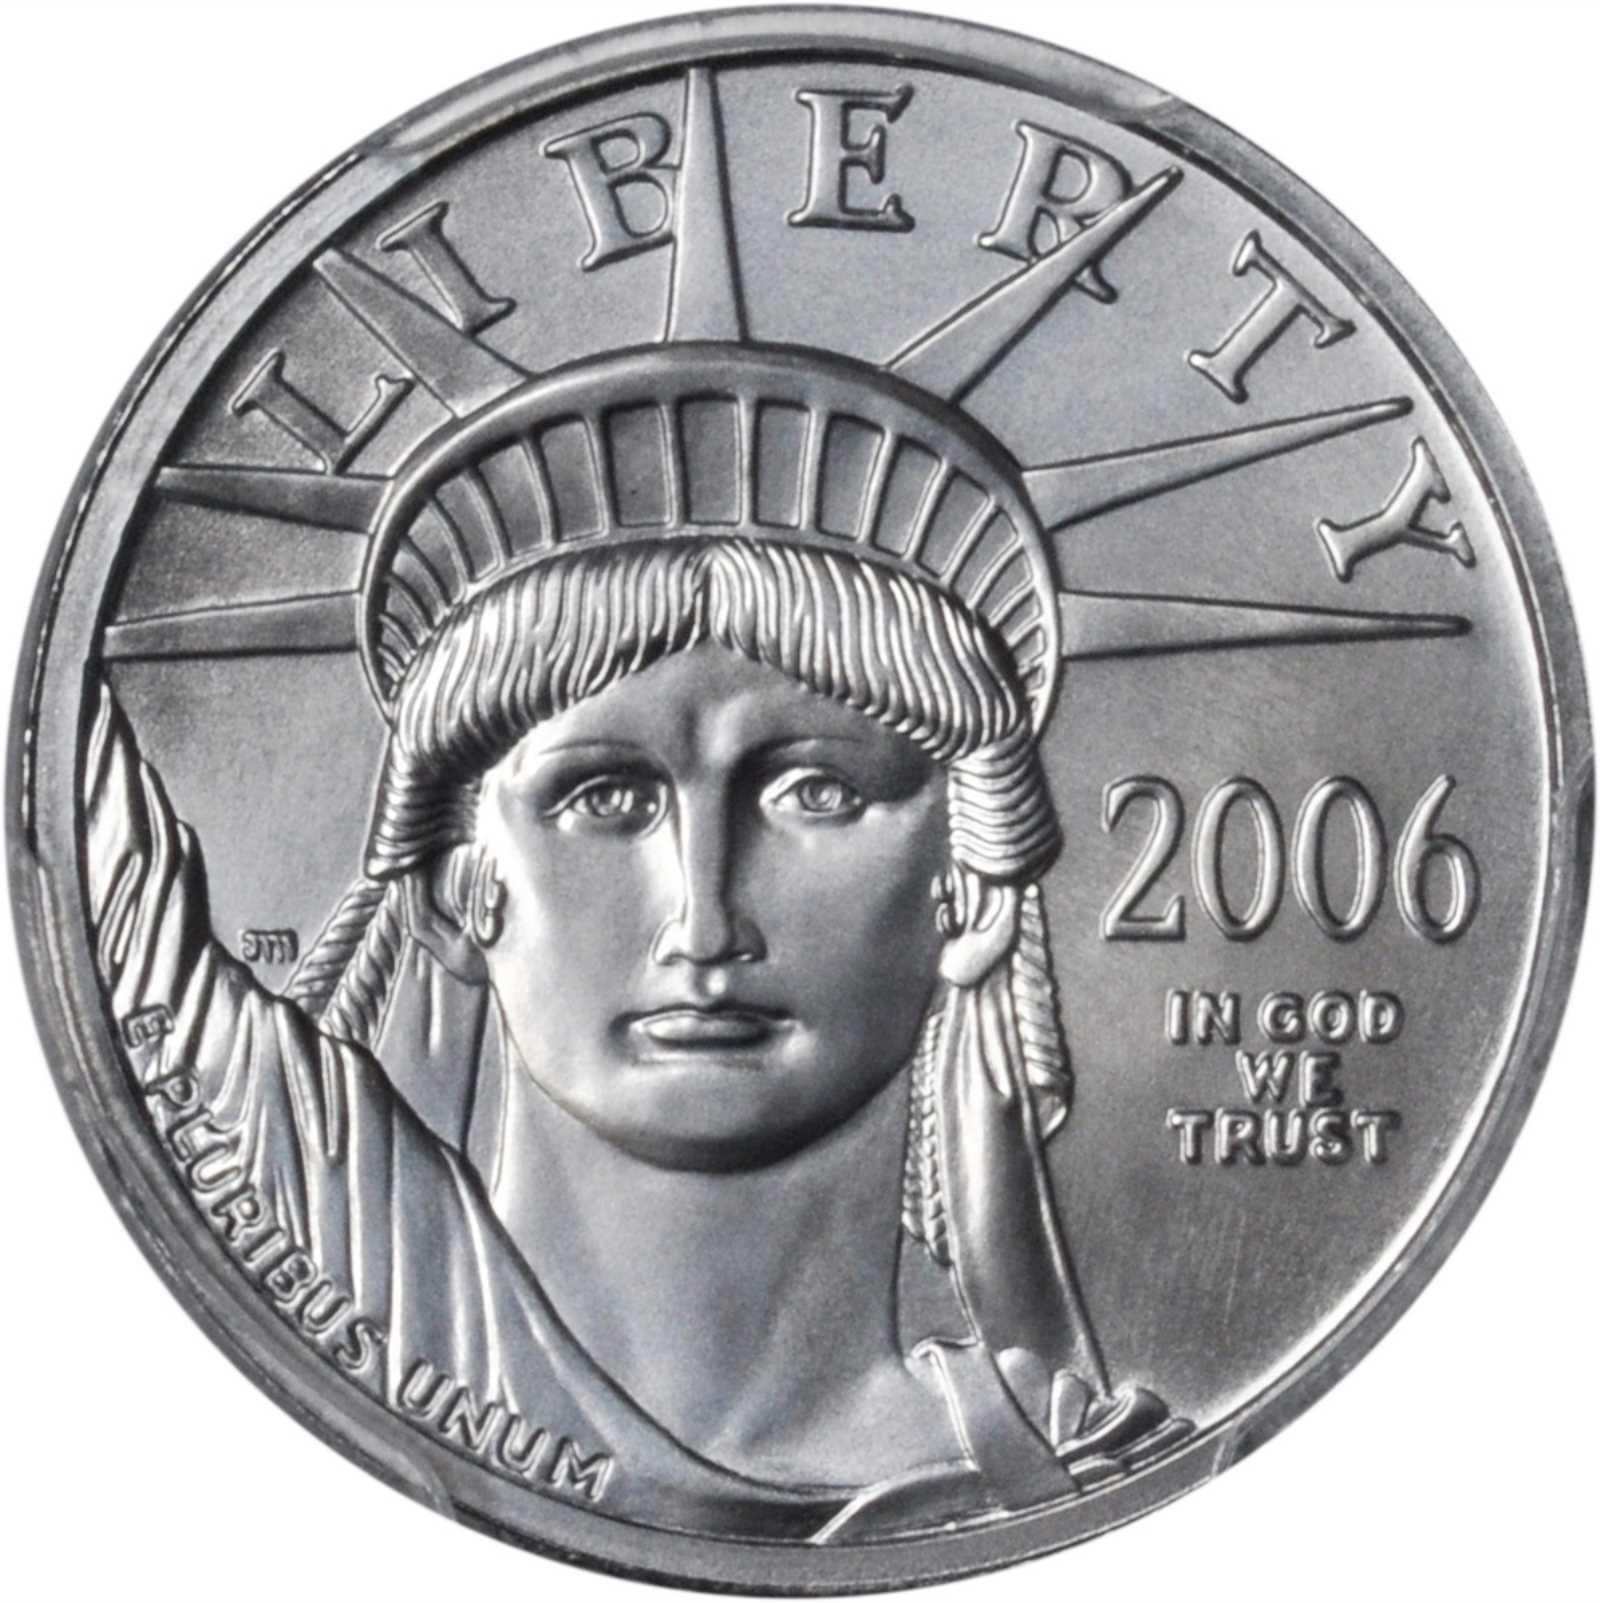 coin ounce one platinum press eagle united proof u releases july obverse anniversary news mint american states s on